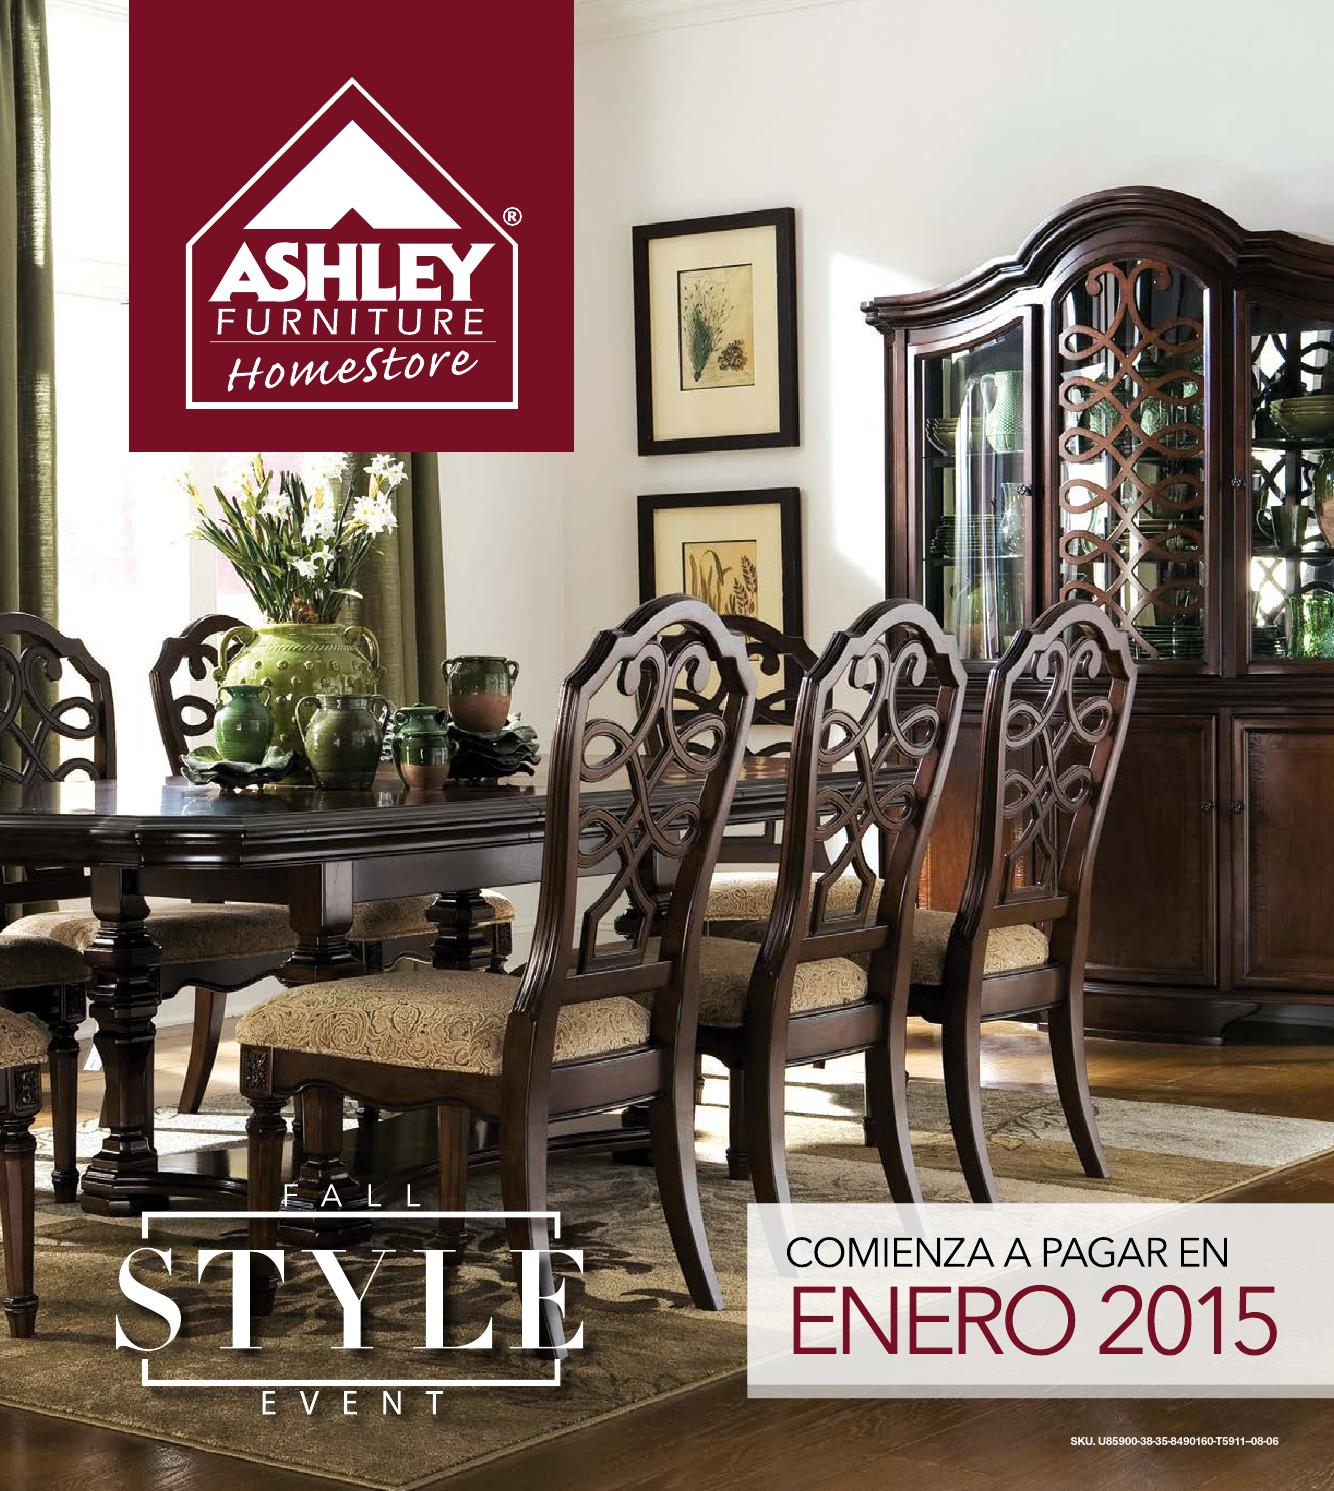 Fall Style Event By Ashley Furniture HomeStore RD